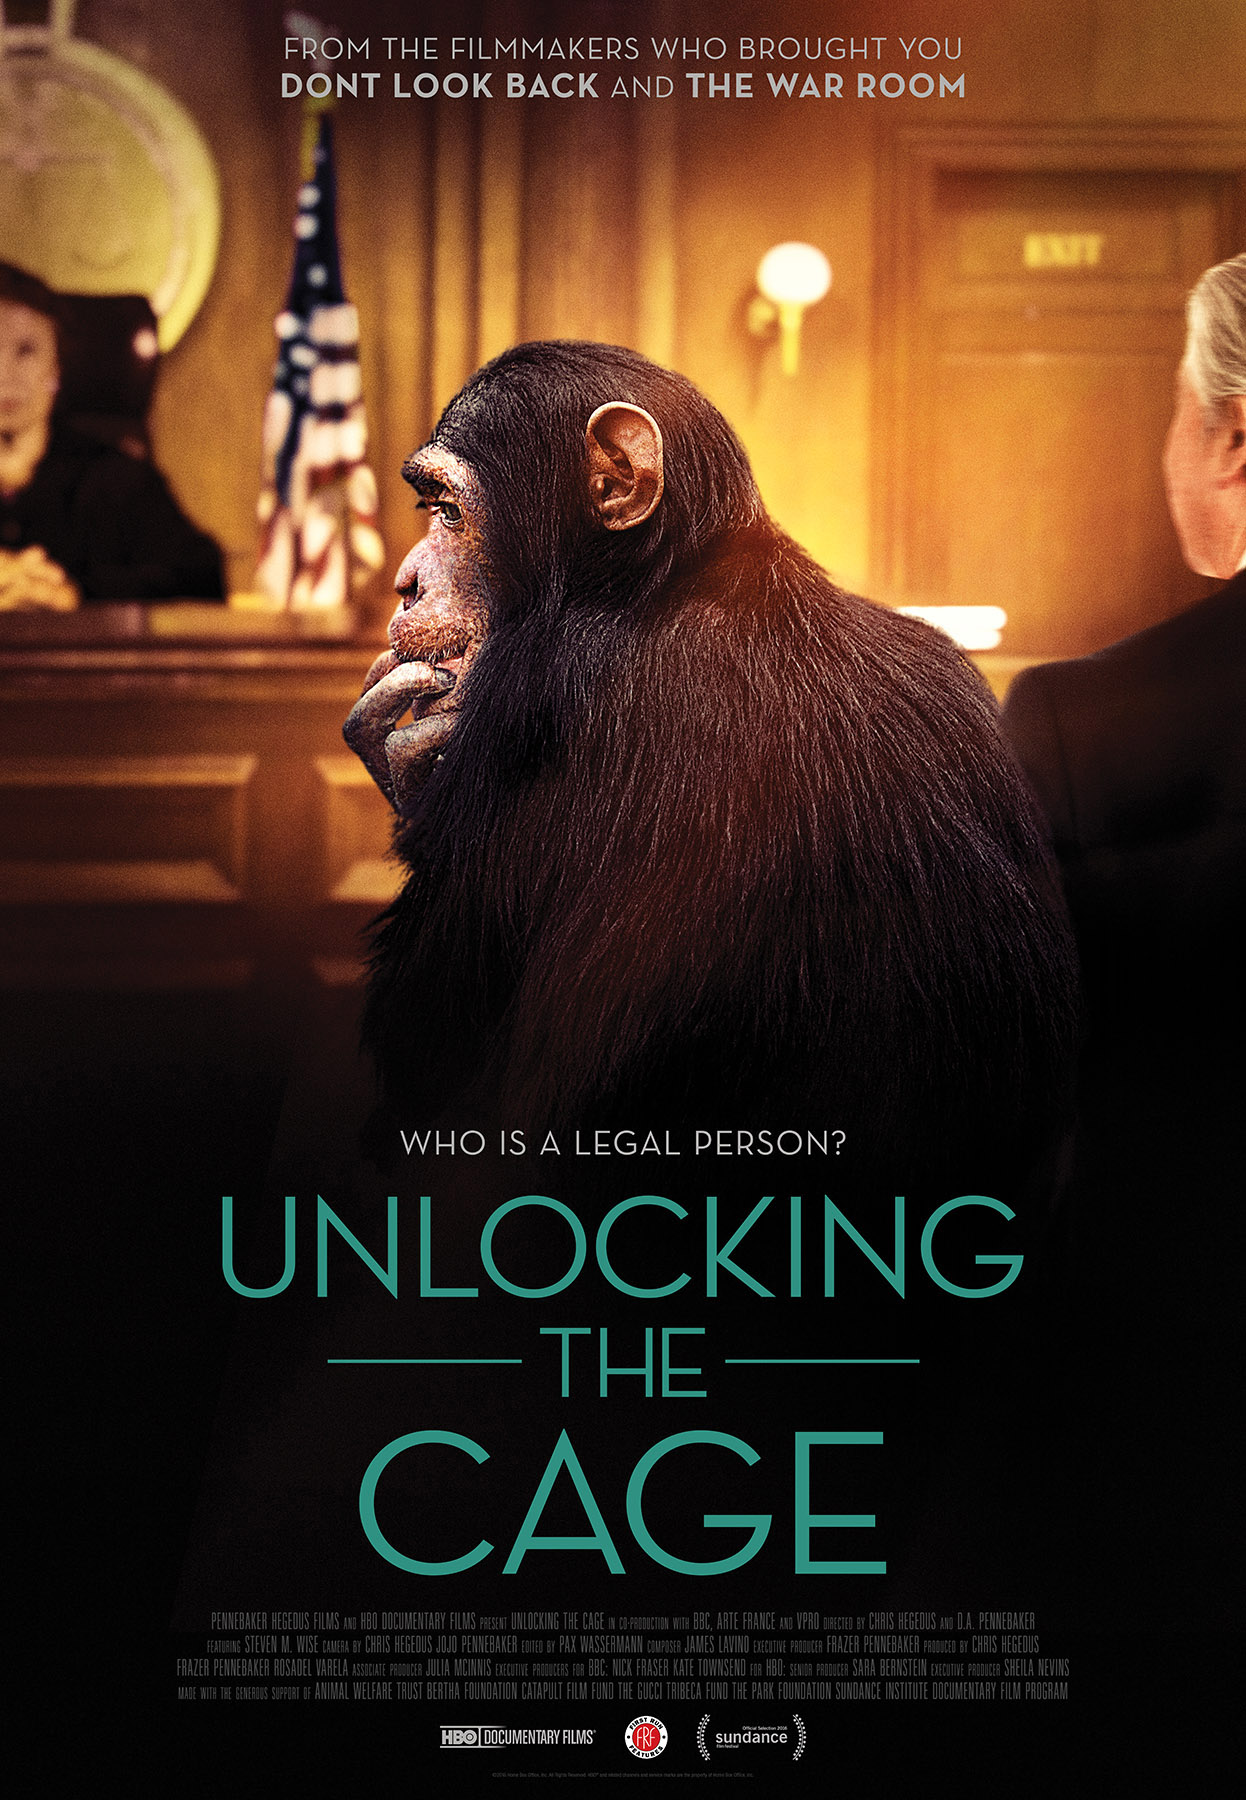 UNLOCKING THE CAGE MOVIE REVIEW World A Note